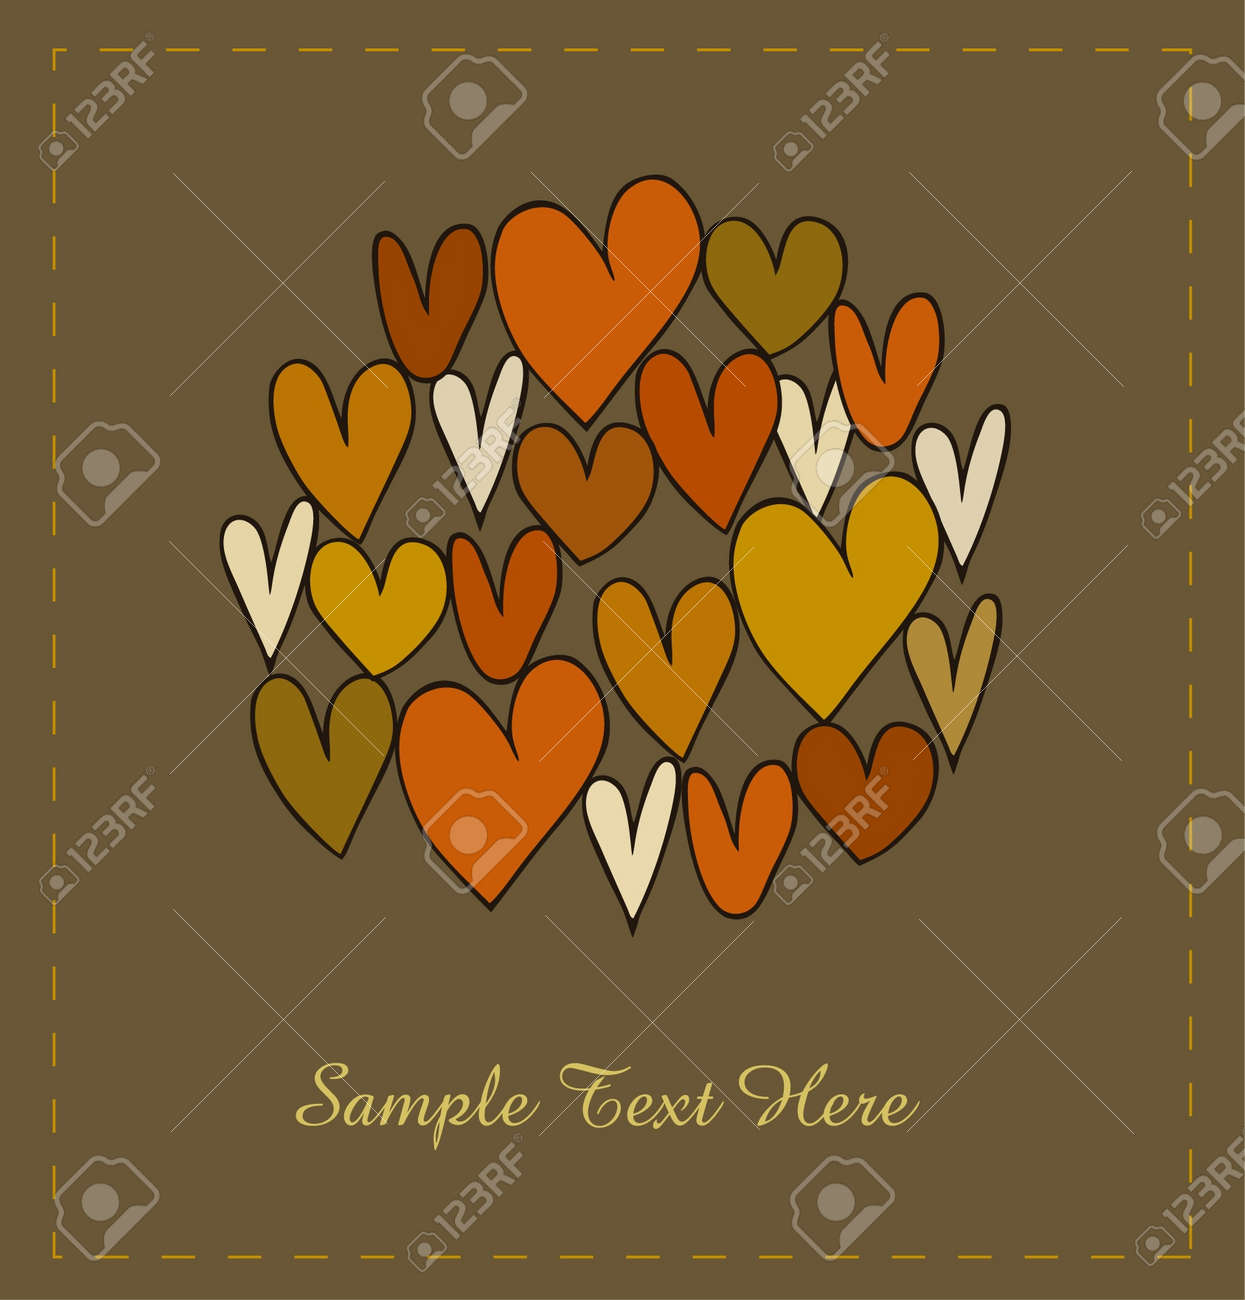 Card template with hearts in circle. Design elements for scrapbooking, gifts, arts, crafts, prints. Cartoon hand drawn background Stock Vector - 16236330